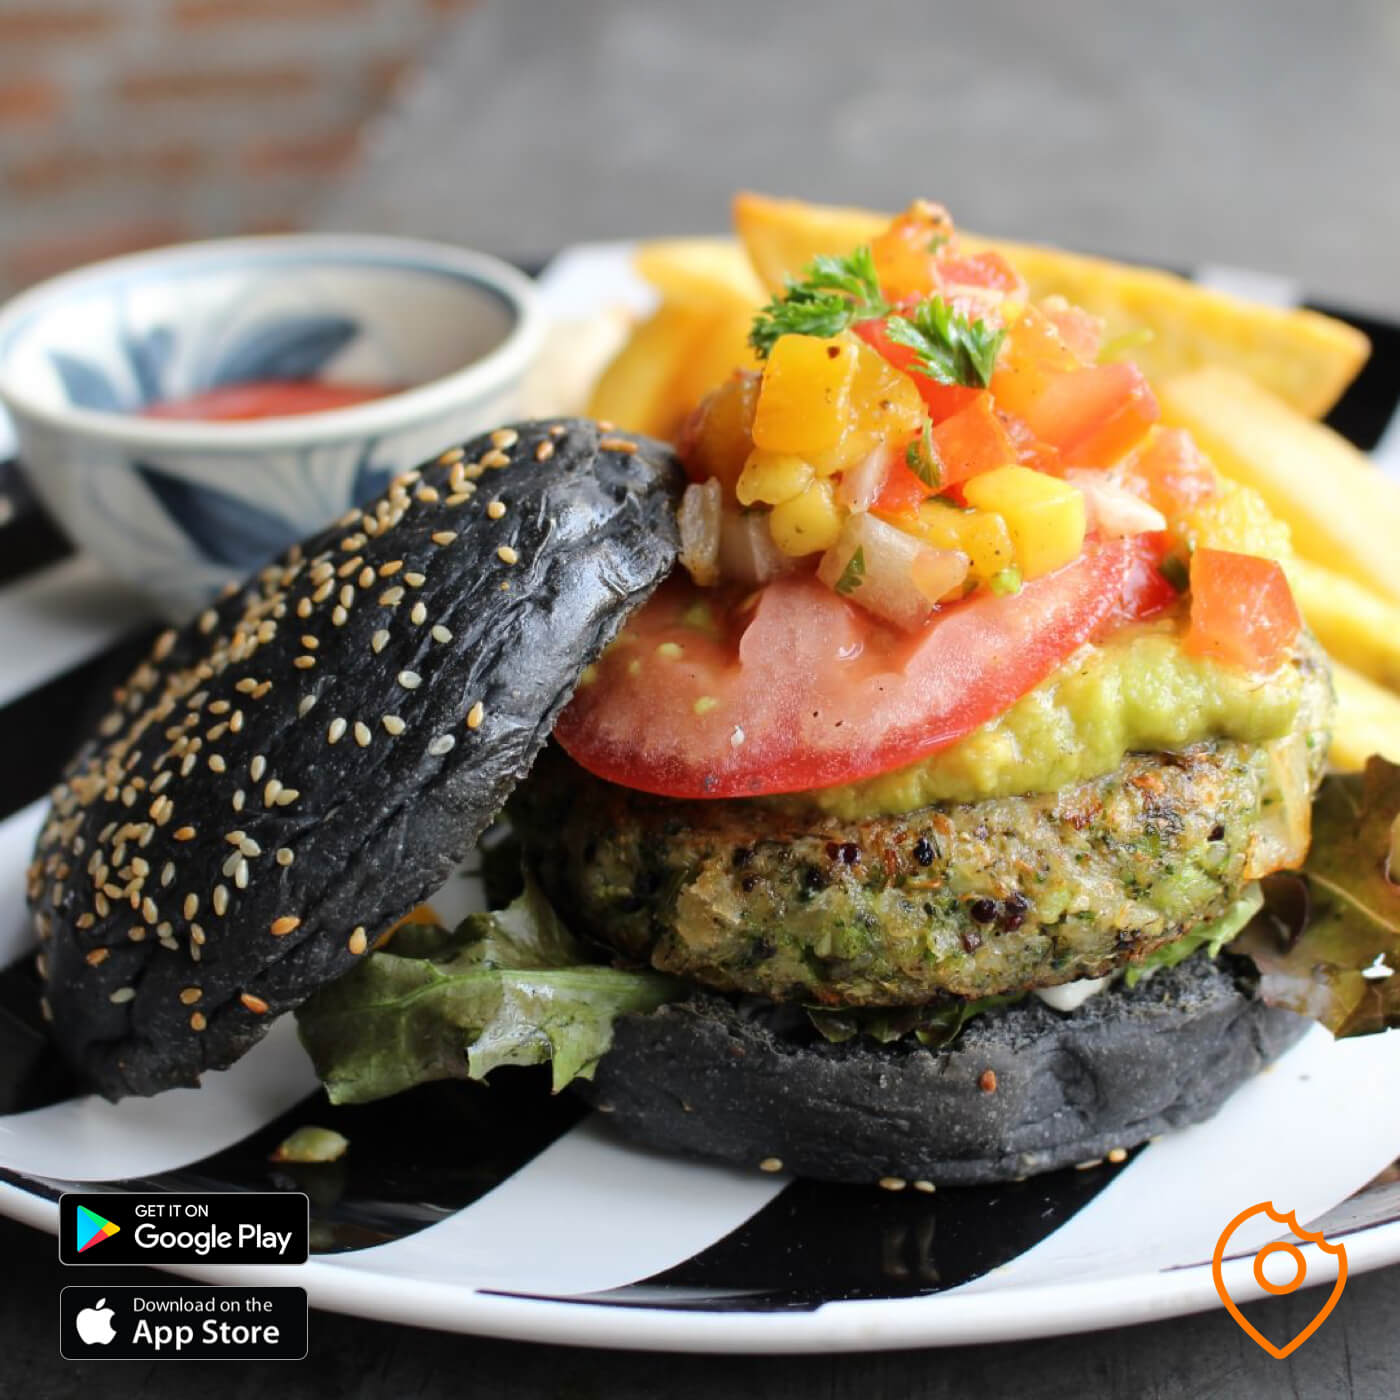 broccoli revolution vegetarian burger